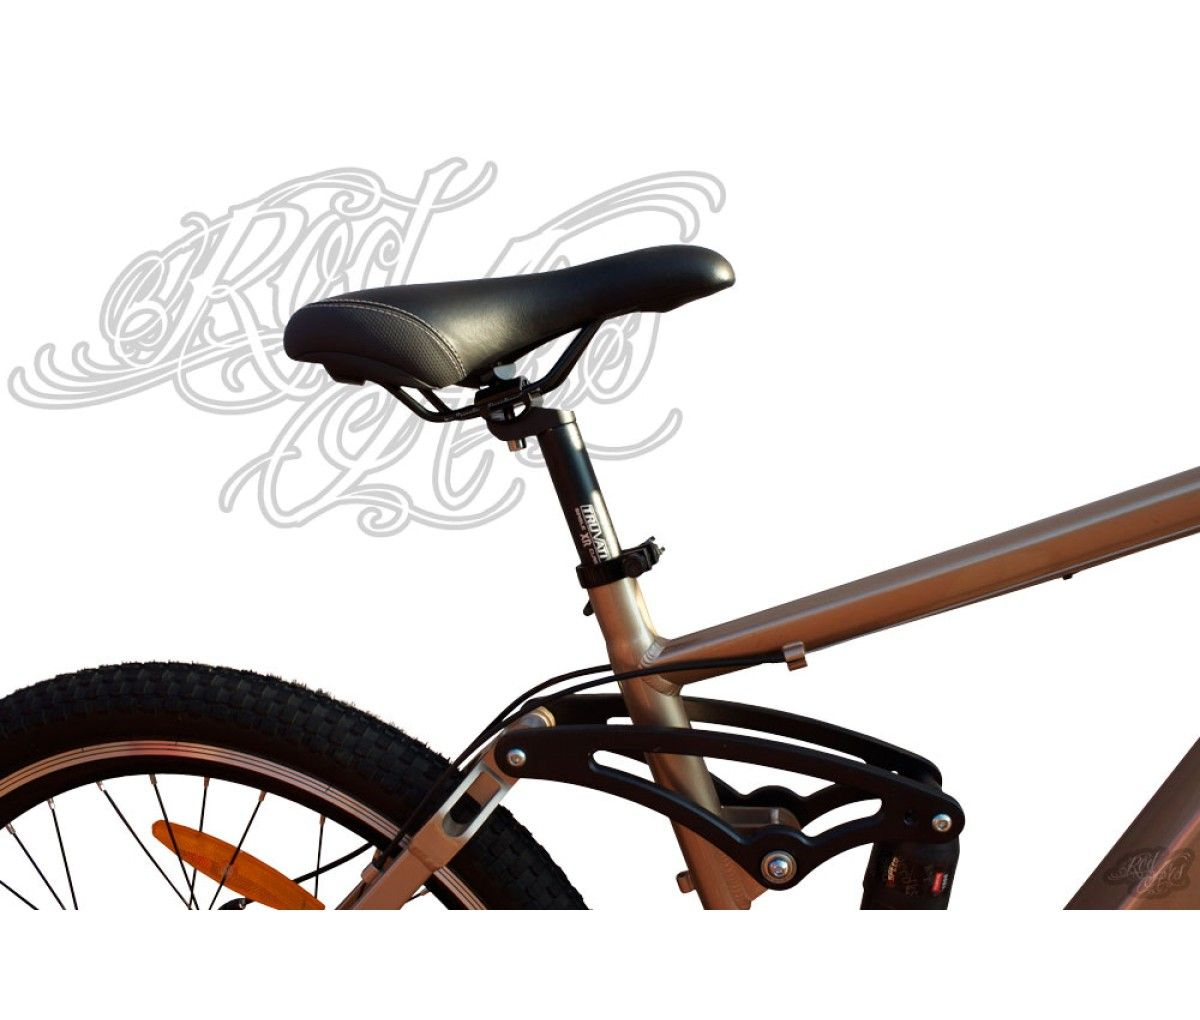 Bicicleta electrica doble suspension bateria oculta | Bicicletas ...